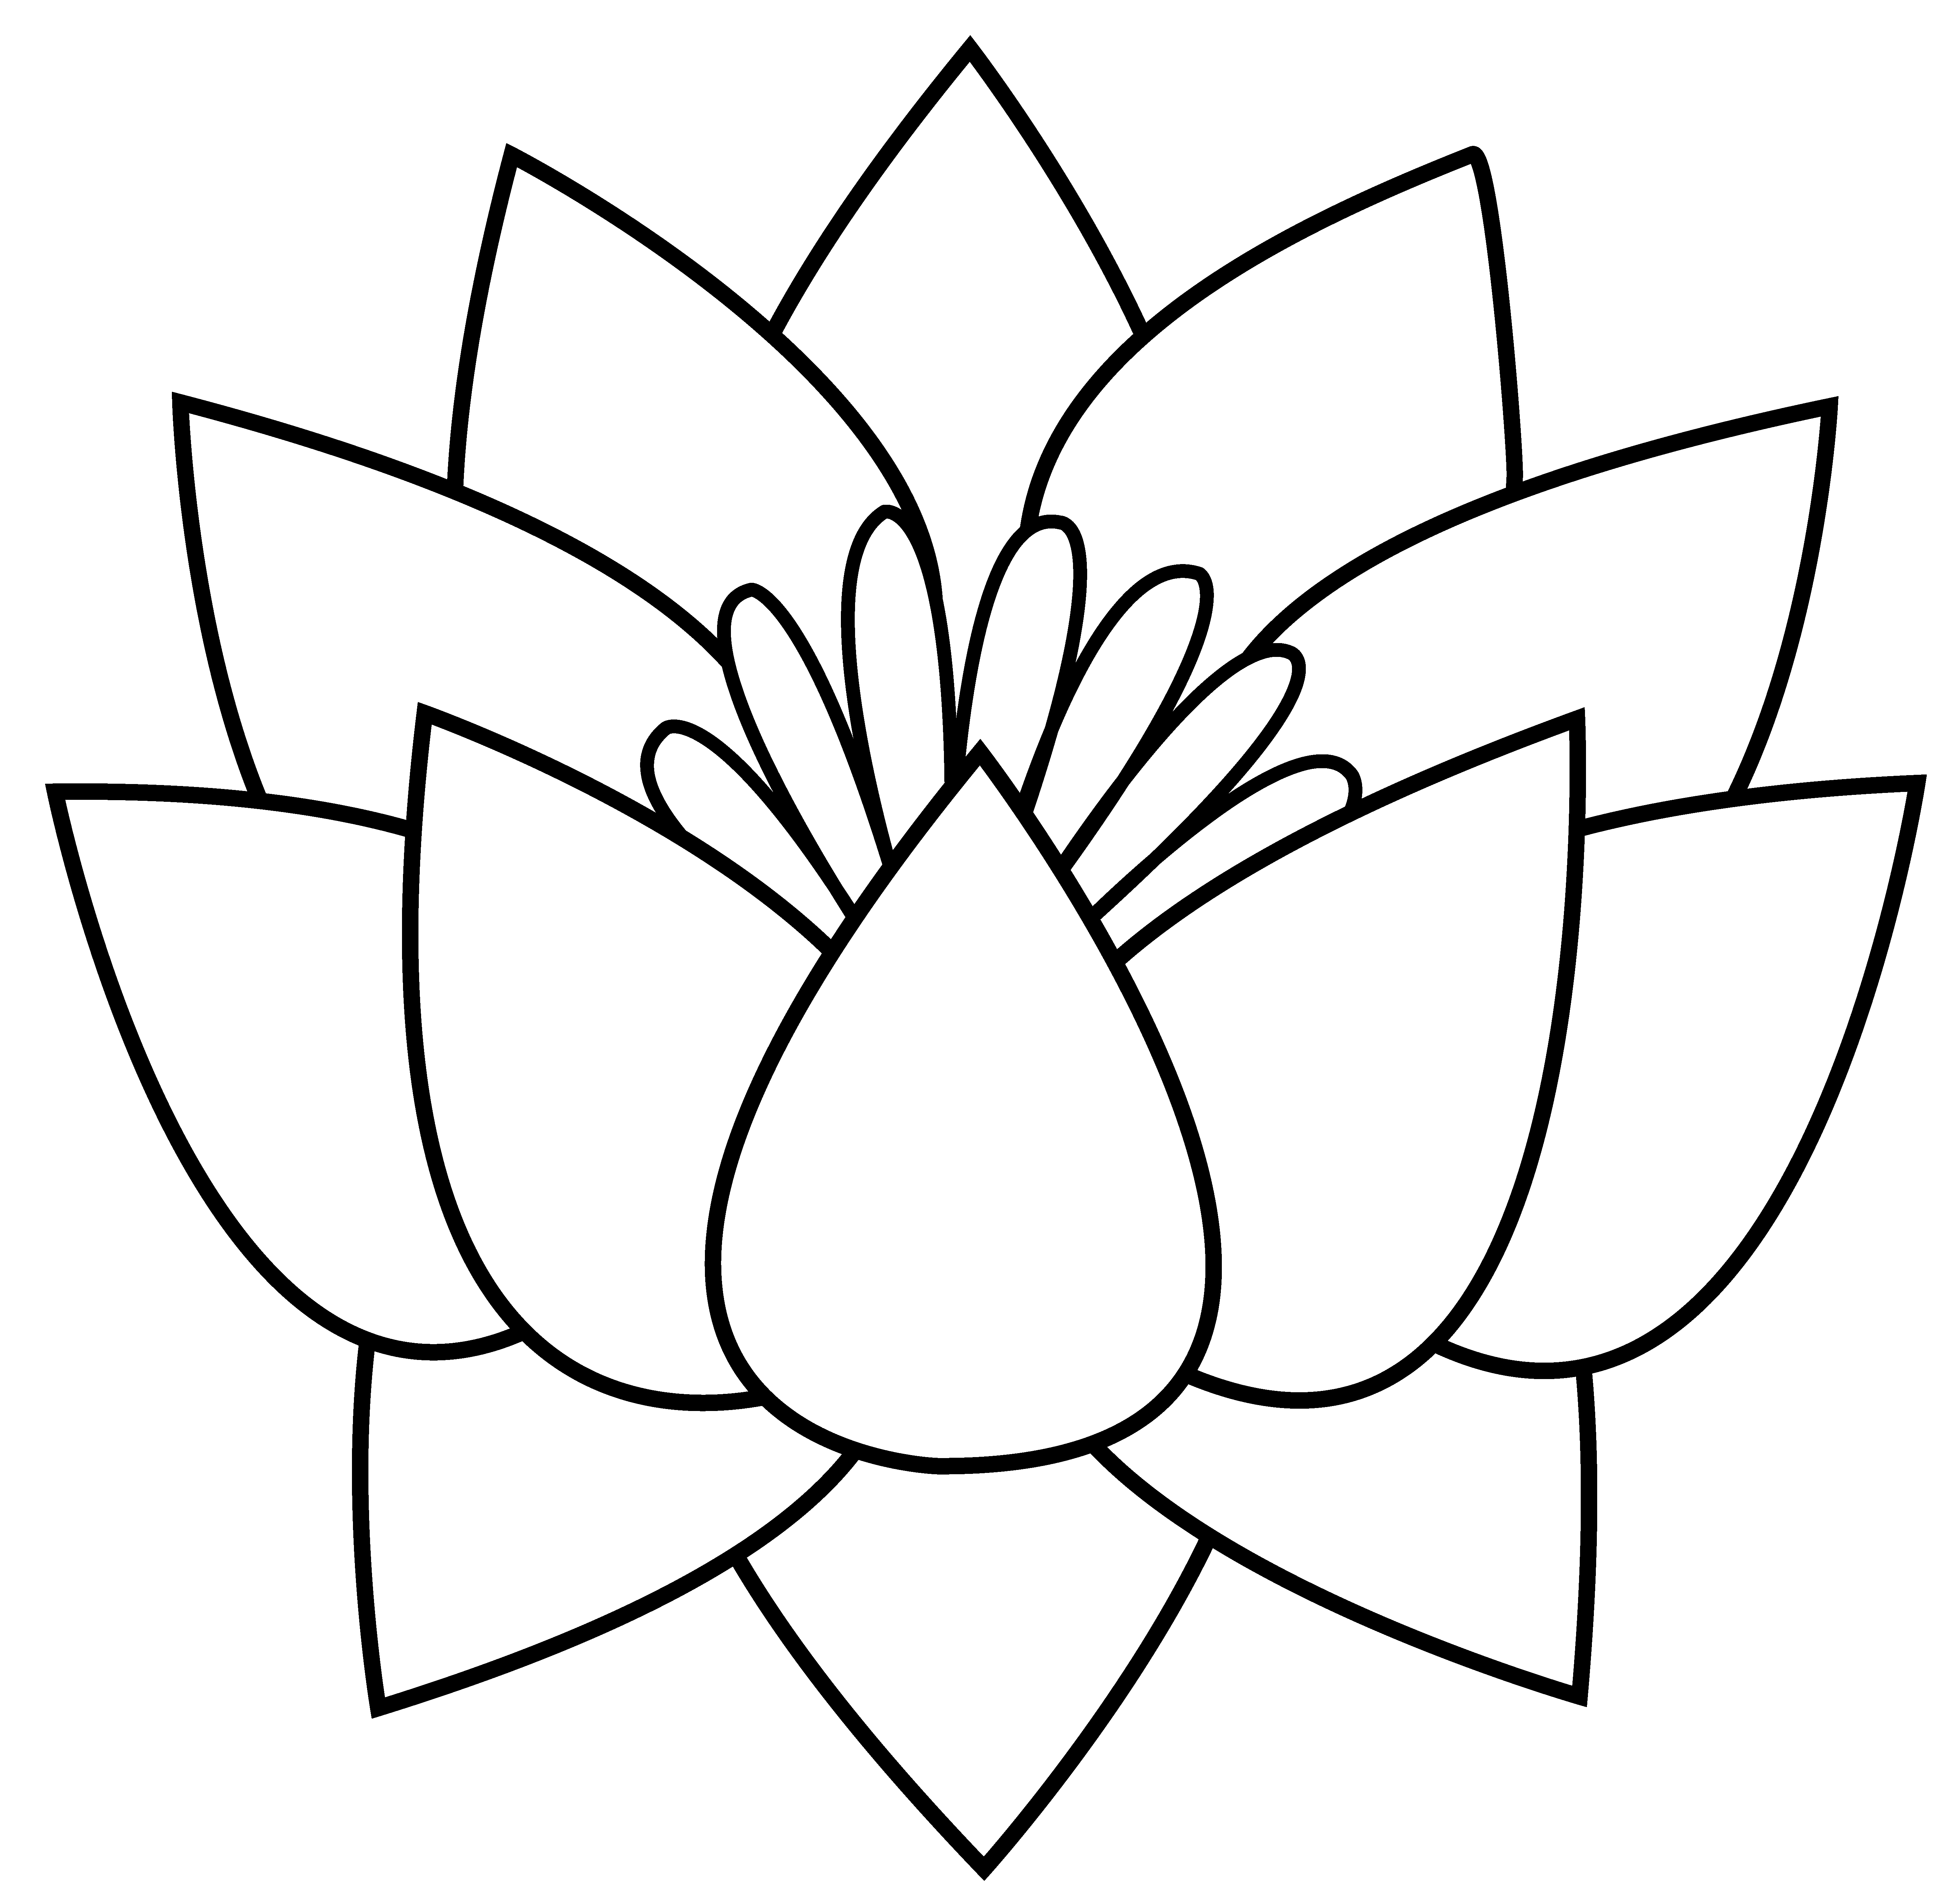 Tiny flower clipart black and white image freeuse download Lotus Flower Line Drawing | Free Download Clip Art | Free Clip Art ... image freeuse download